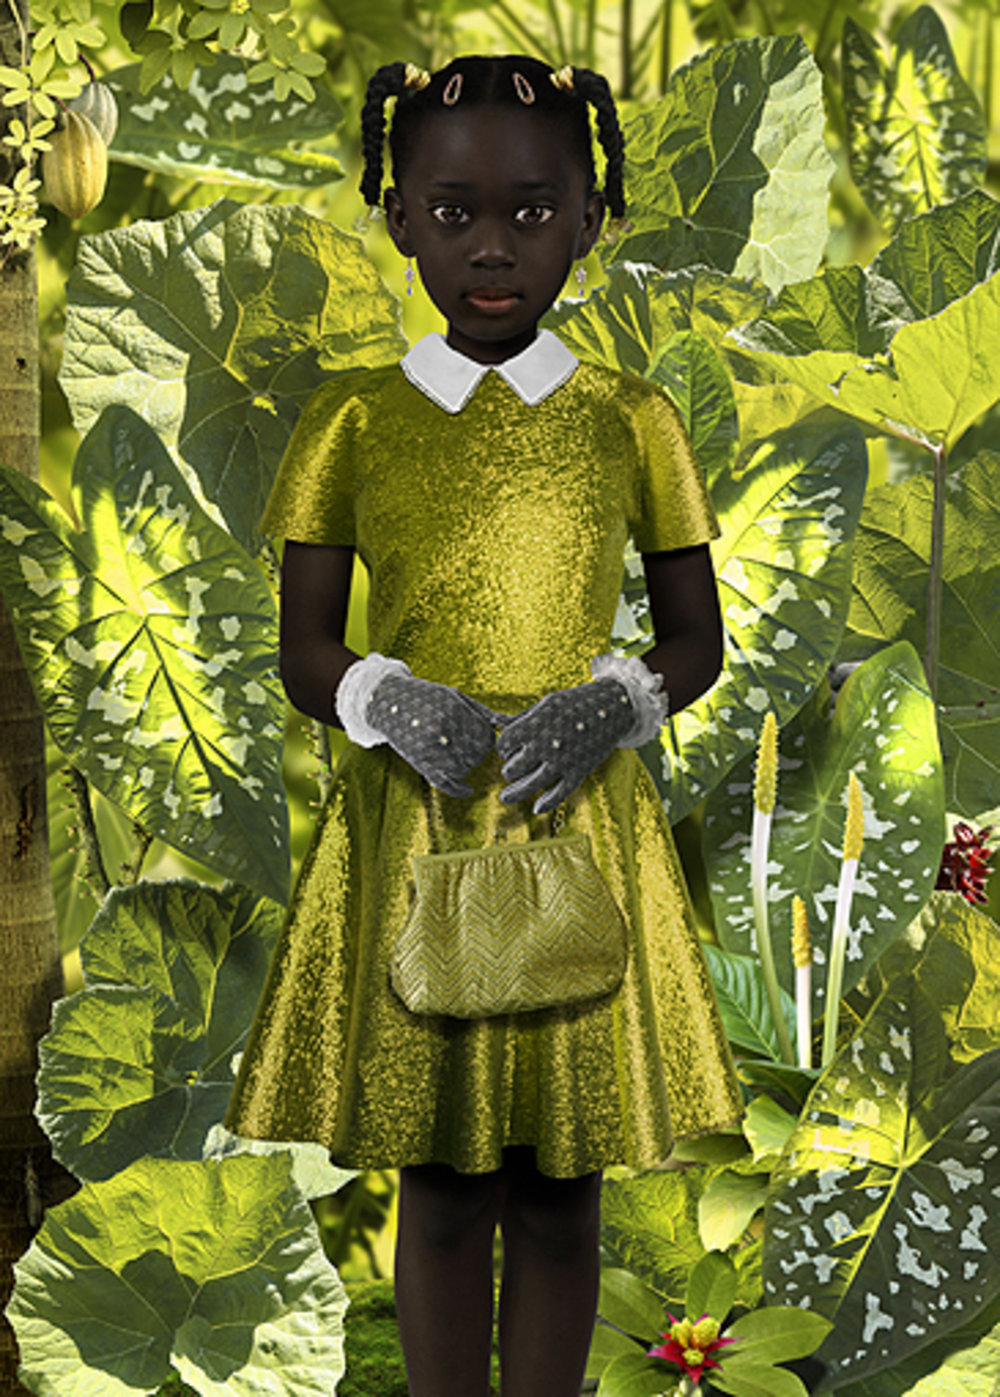 Ruud Van Empel. World, 2008